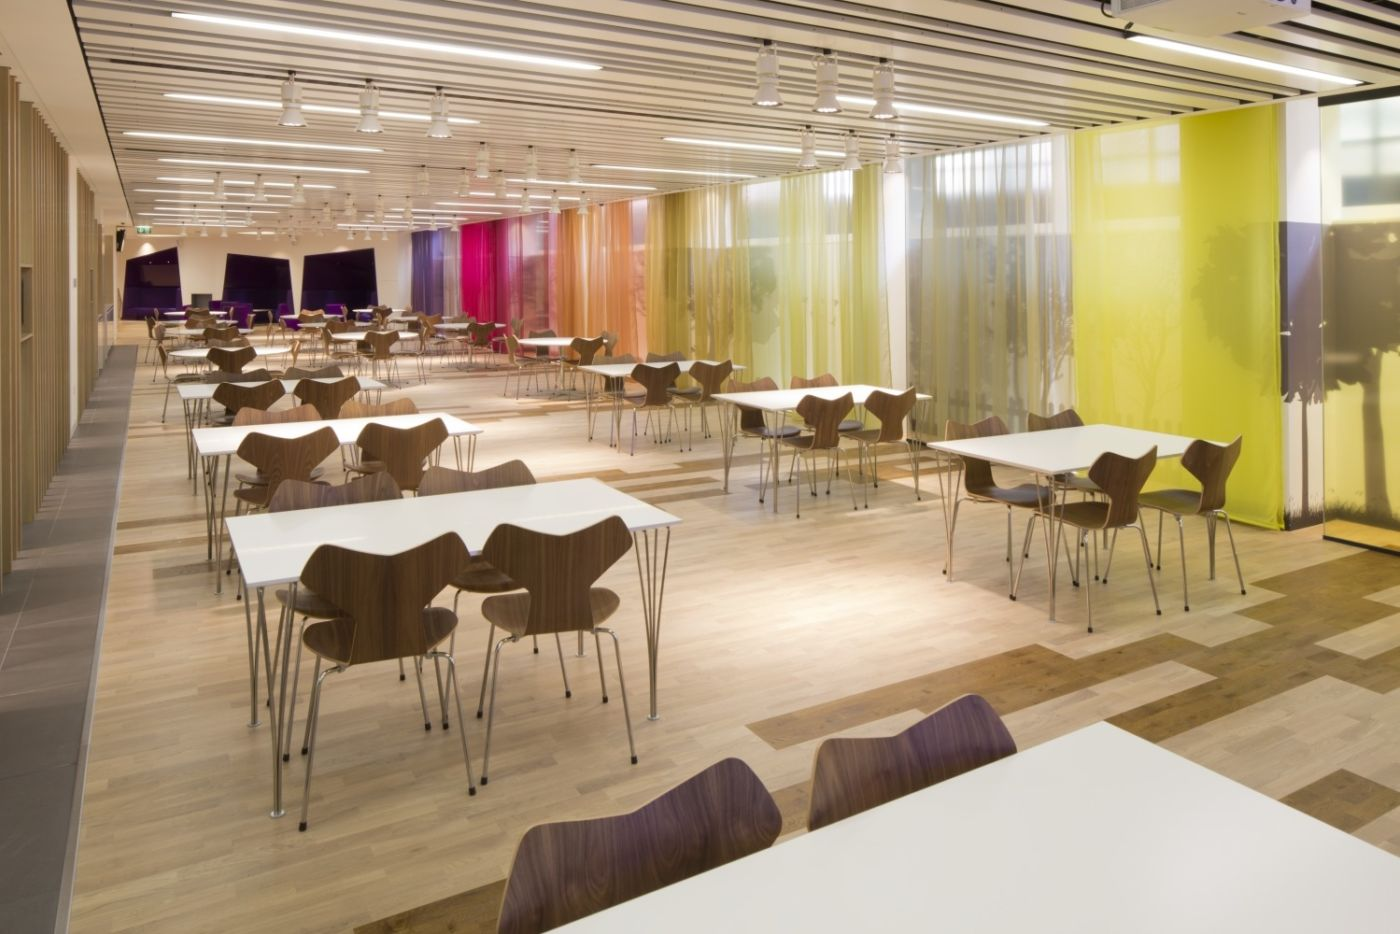 Large staff dining area with coloured wall accents